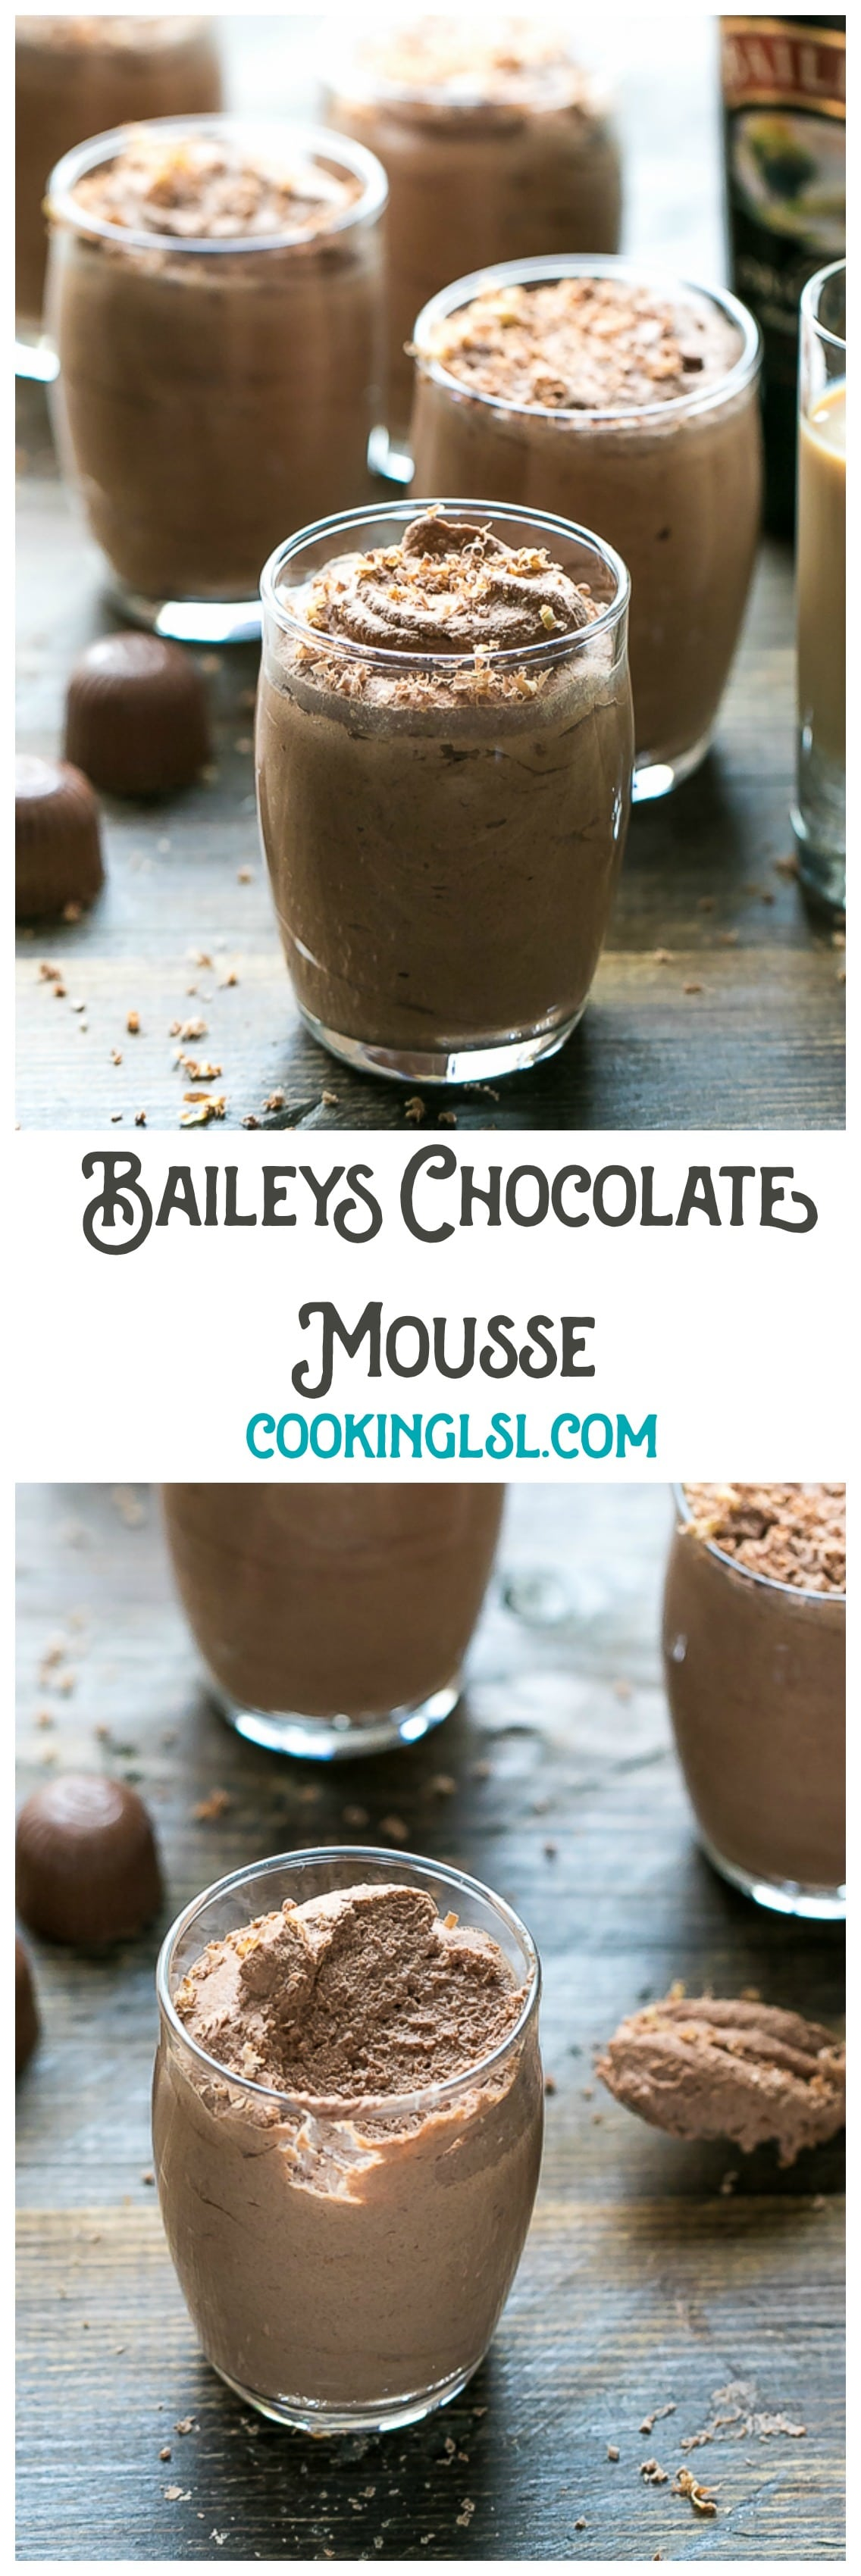 Easy Baileys Chocolate Mousse Recipe - a boozy dessert for chocolate lovers. No bake sweet treat. Made with Baileys Irish Cream. Just in time for St Patrick's Day!